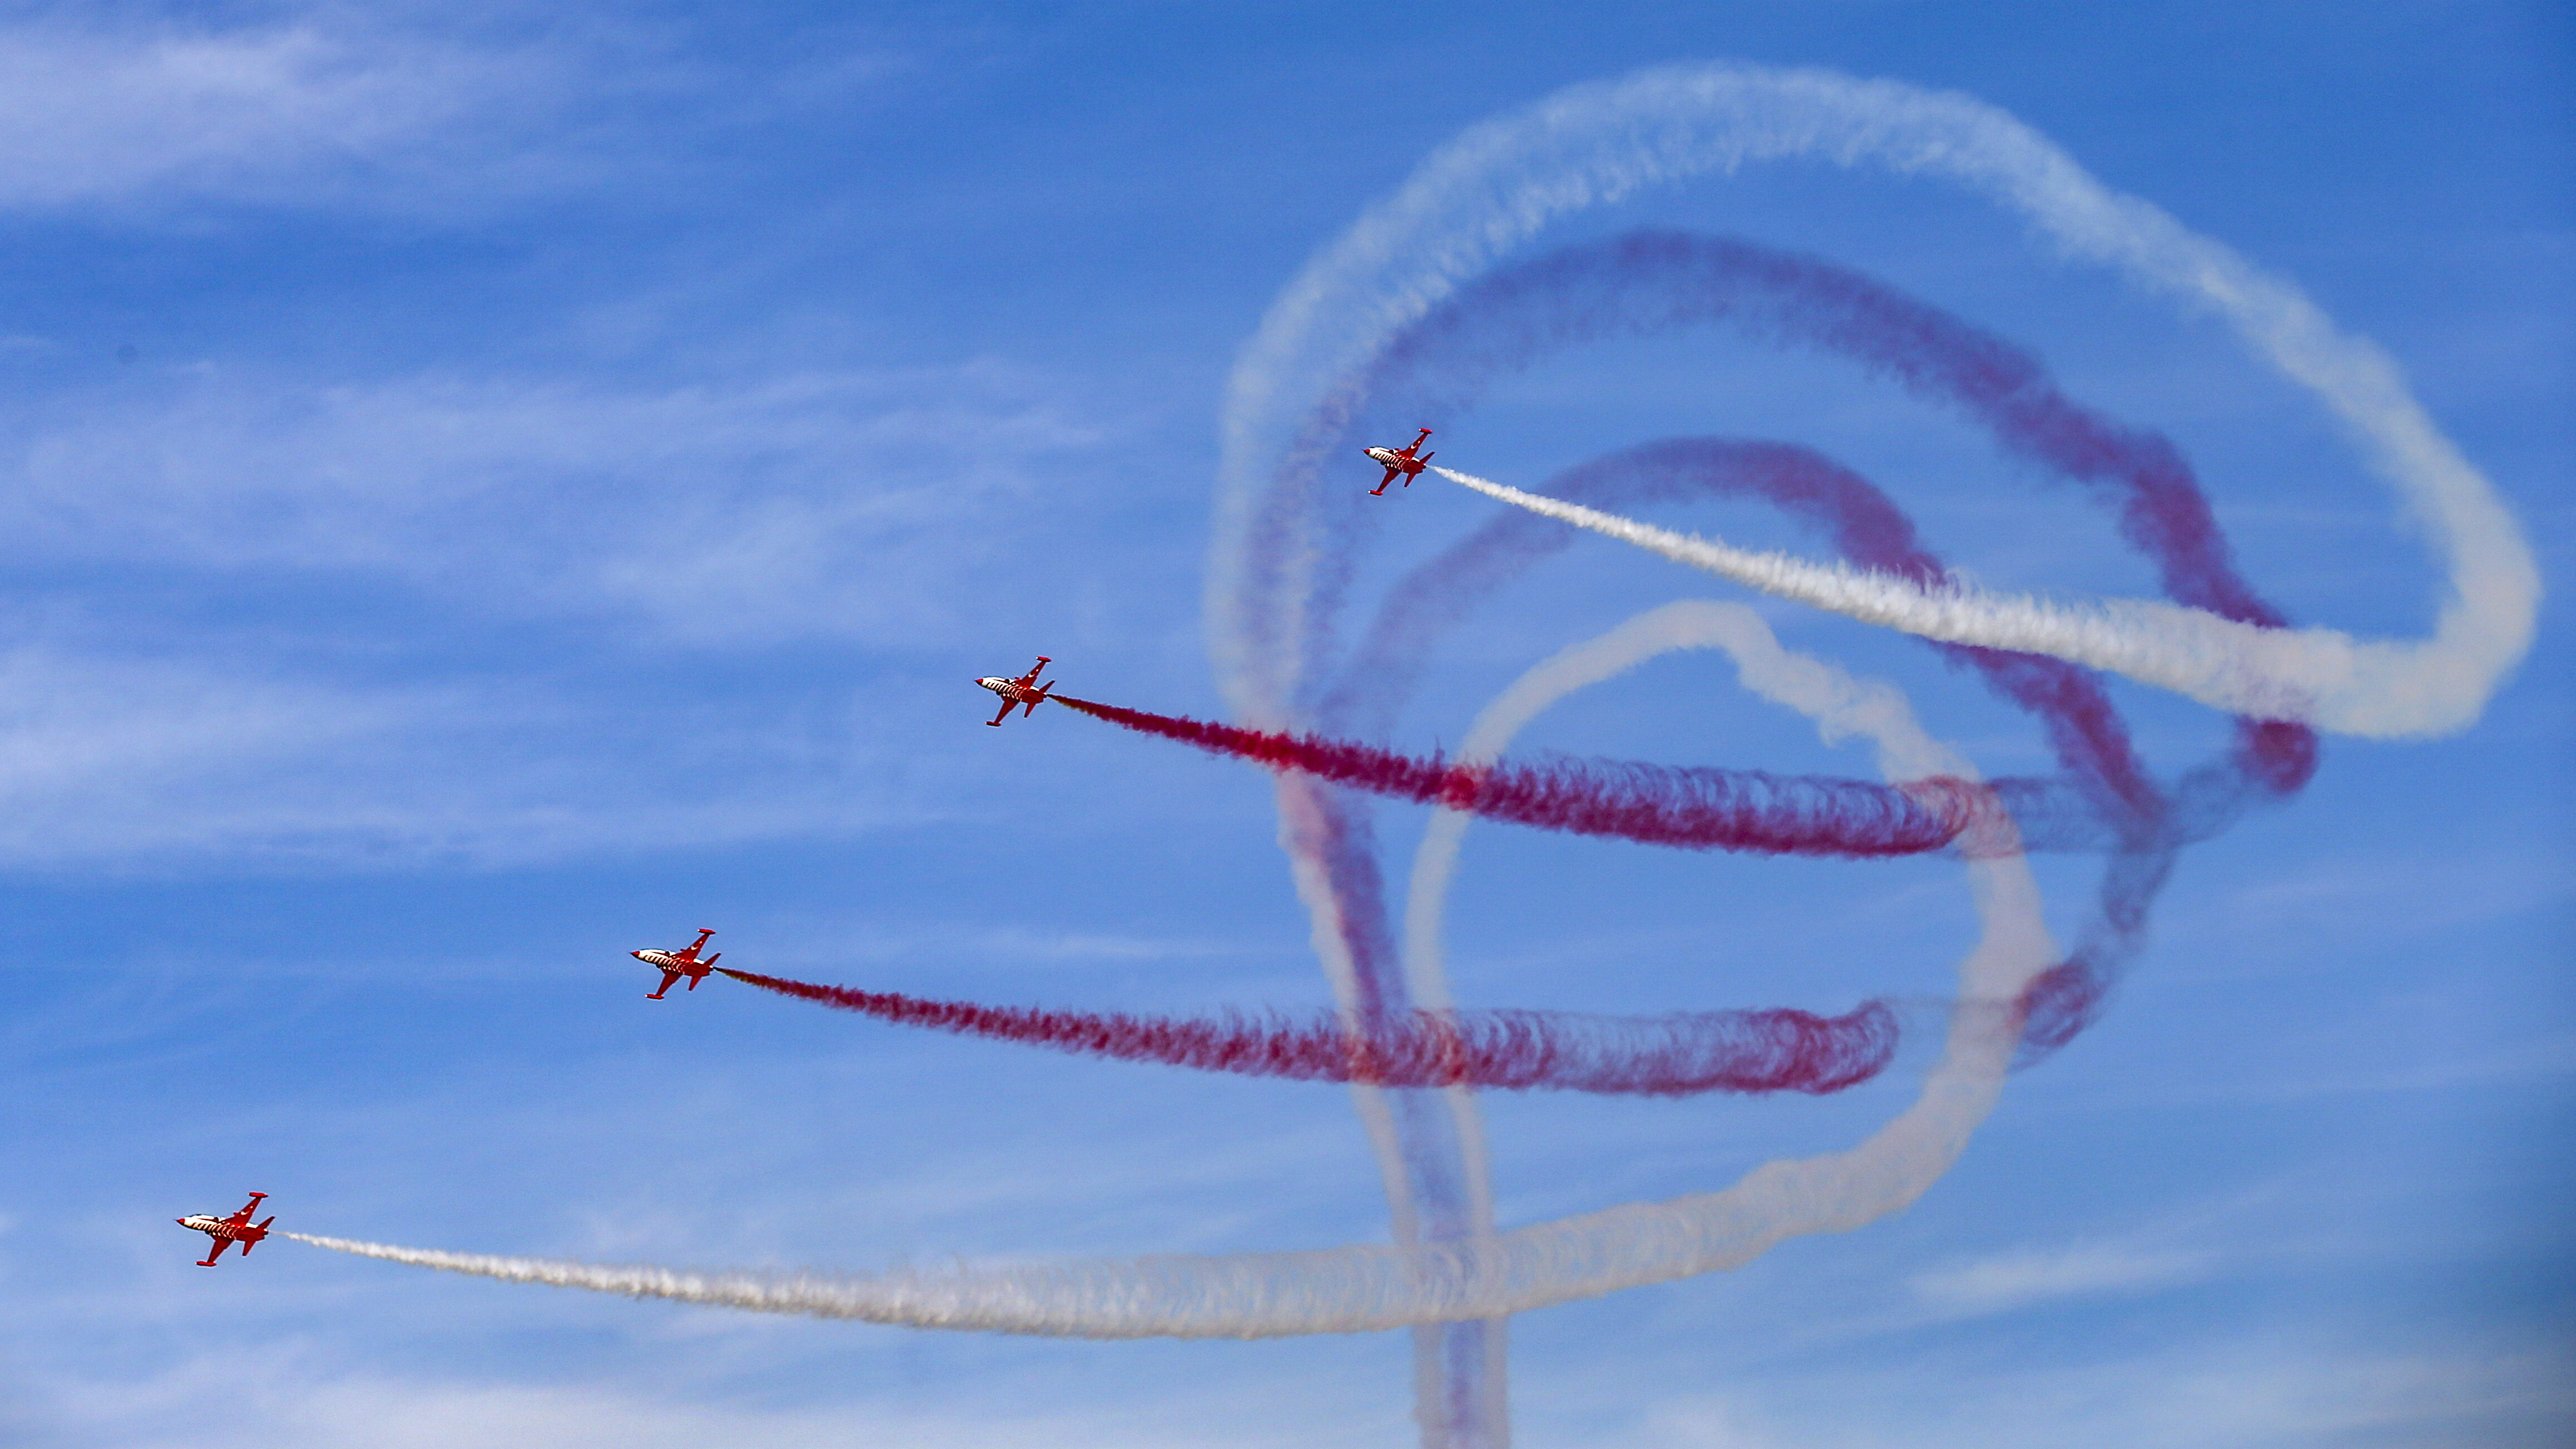 'Turkish Stars', F-5 fighter airplanes, the aerobatic team of the Turkish Air Force, fly in formation over Istanbul's new airport, during the Teknofest aviation, space and technology fair, Sunday, Sept. 23, 2018. (AP Photo/Emrah Gurel)